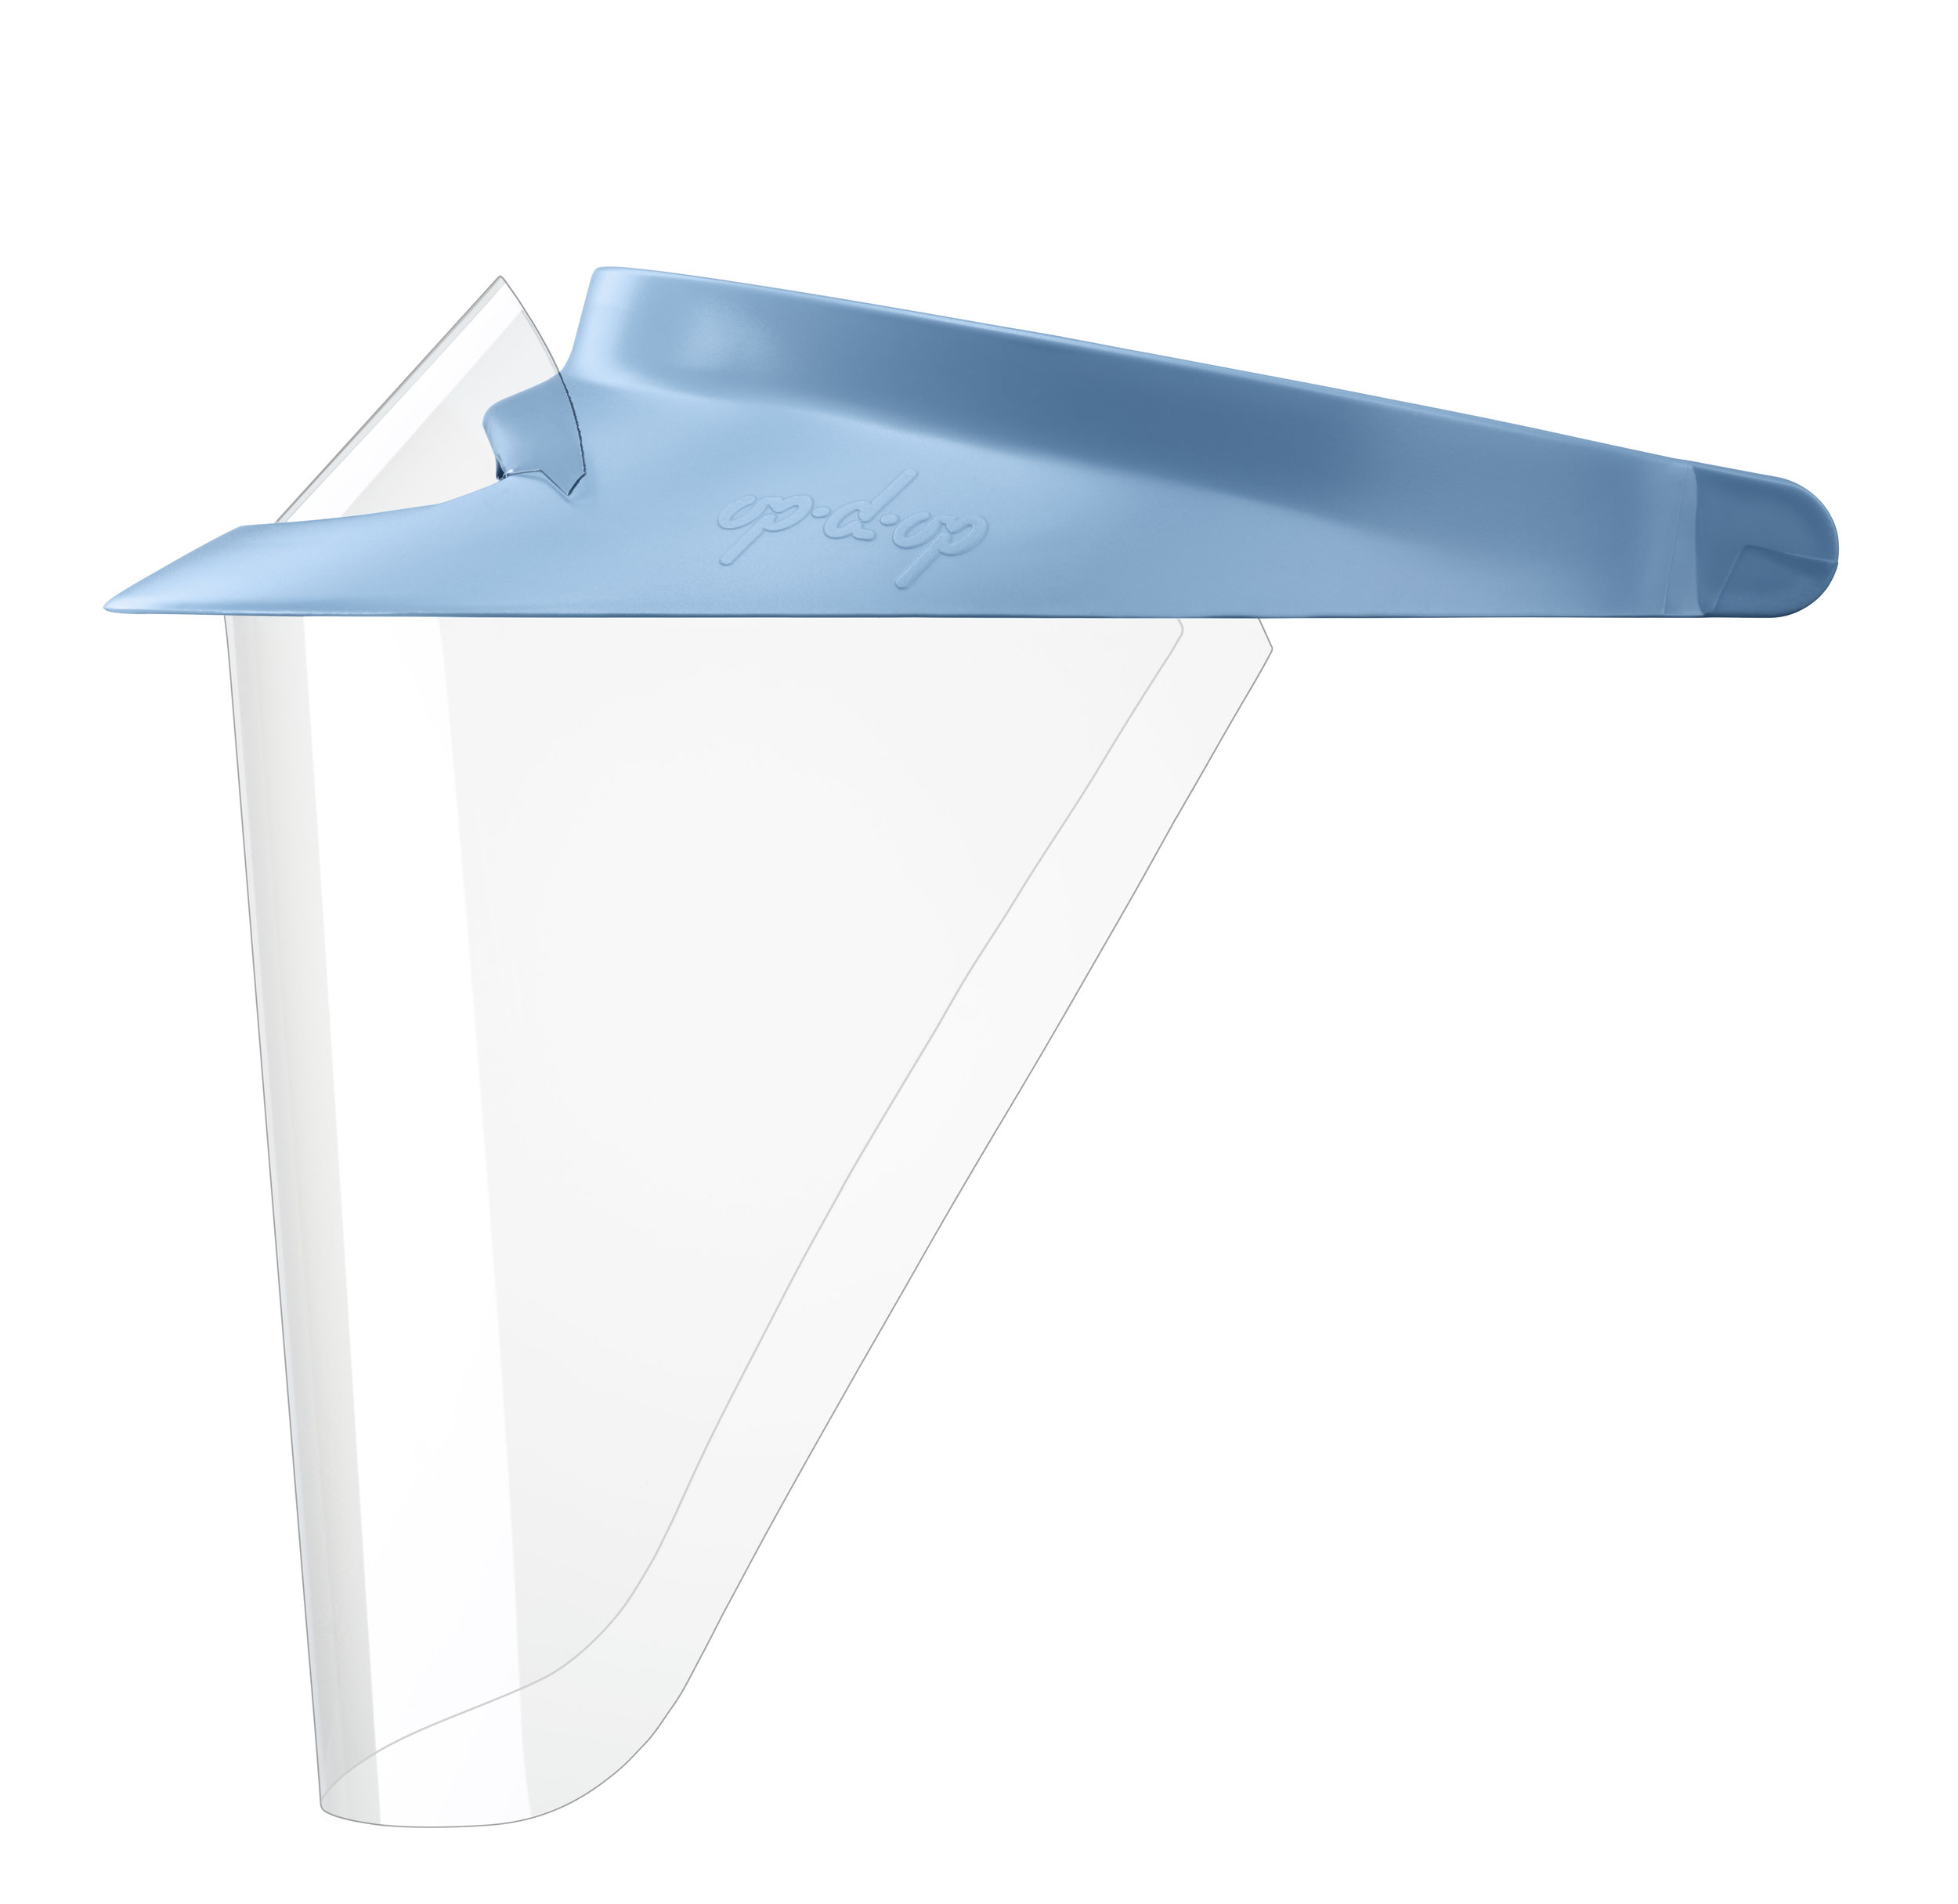 THE ABS - SIMPLE +STREAMLINEDAVAILABLE IN FOUR SIZESSMALL, MEDIUM, LARGE OR EXTRA-LARGEREUSABLE, REPLACEABLE SHIELDS